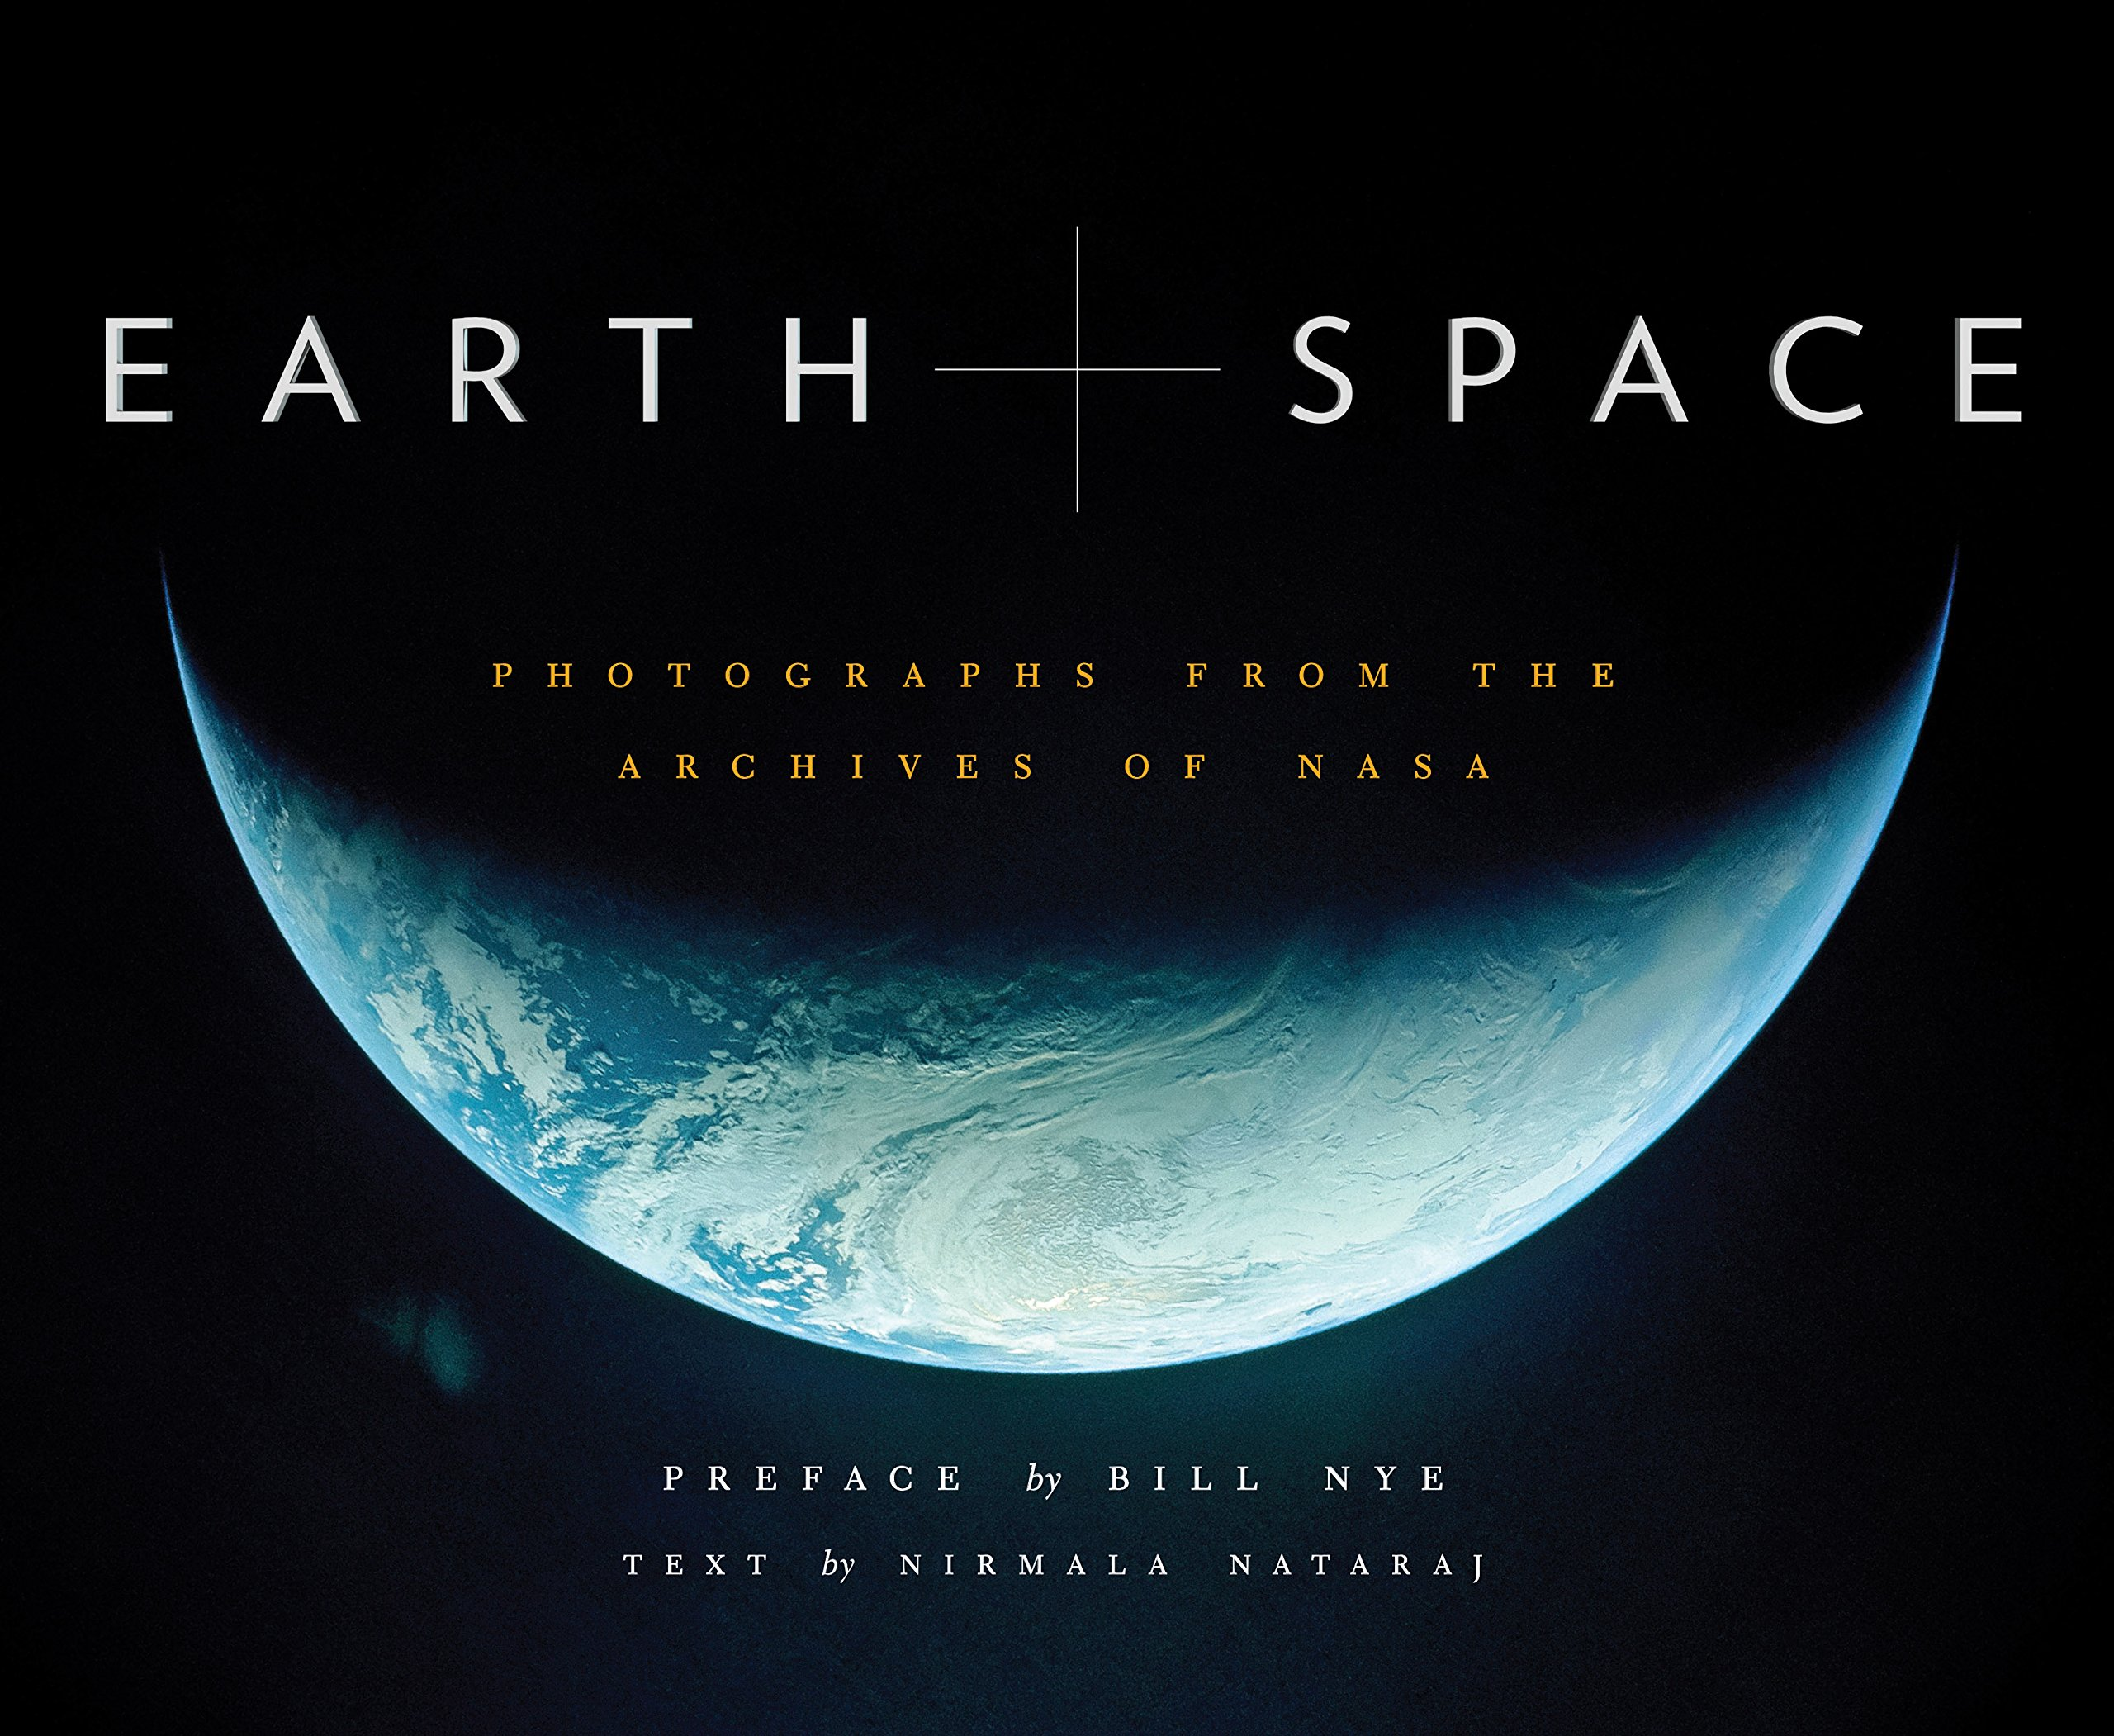 Earth Space Photographs Archives NASA product image